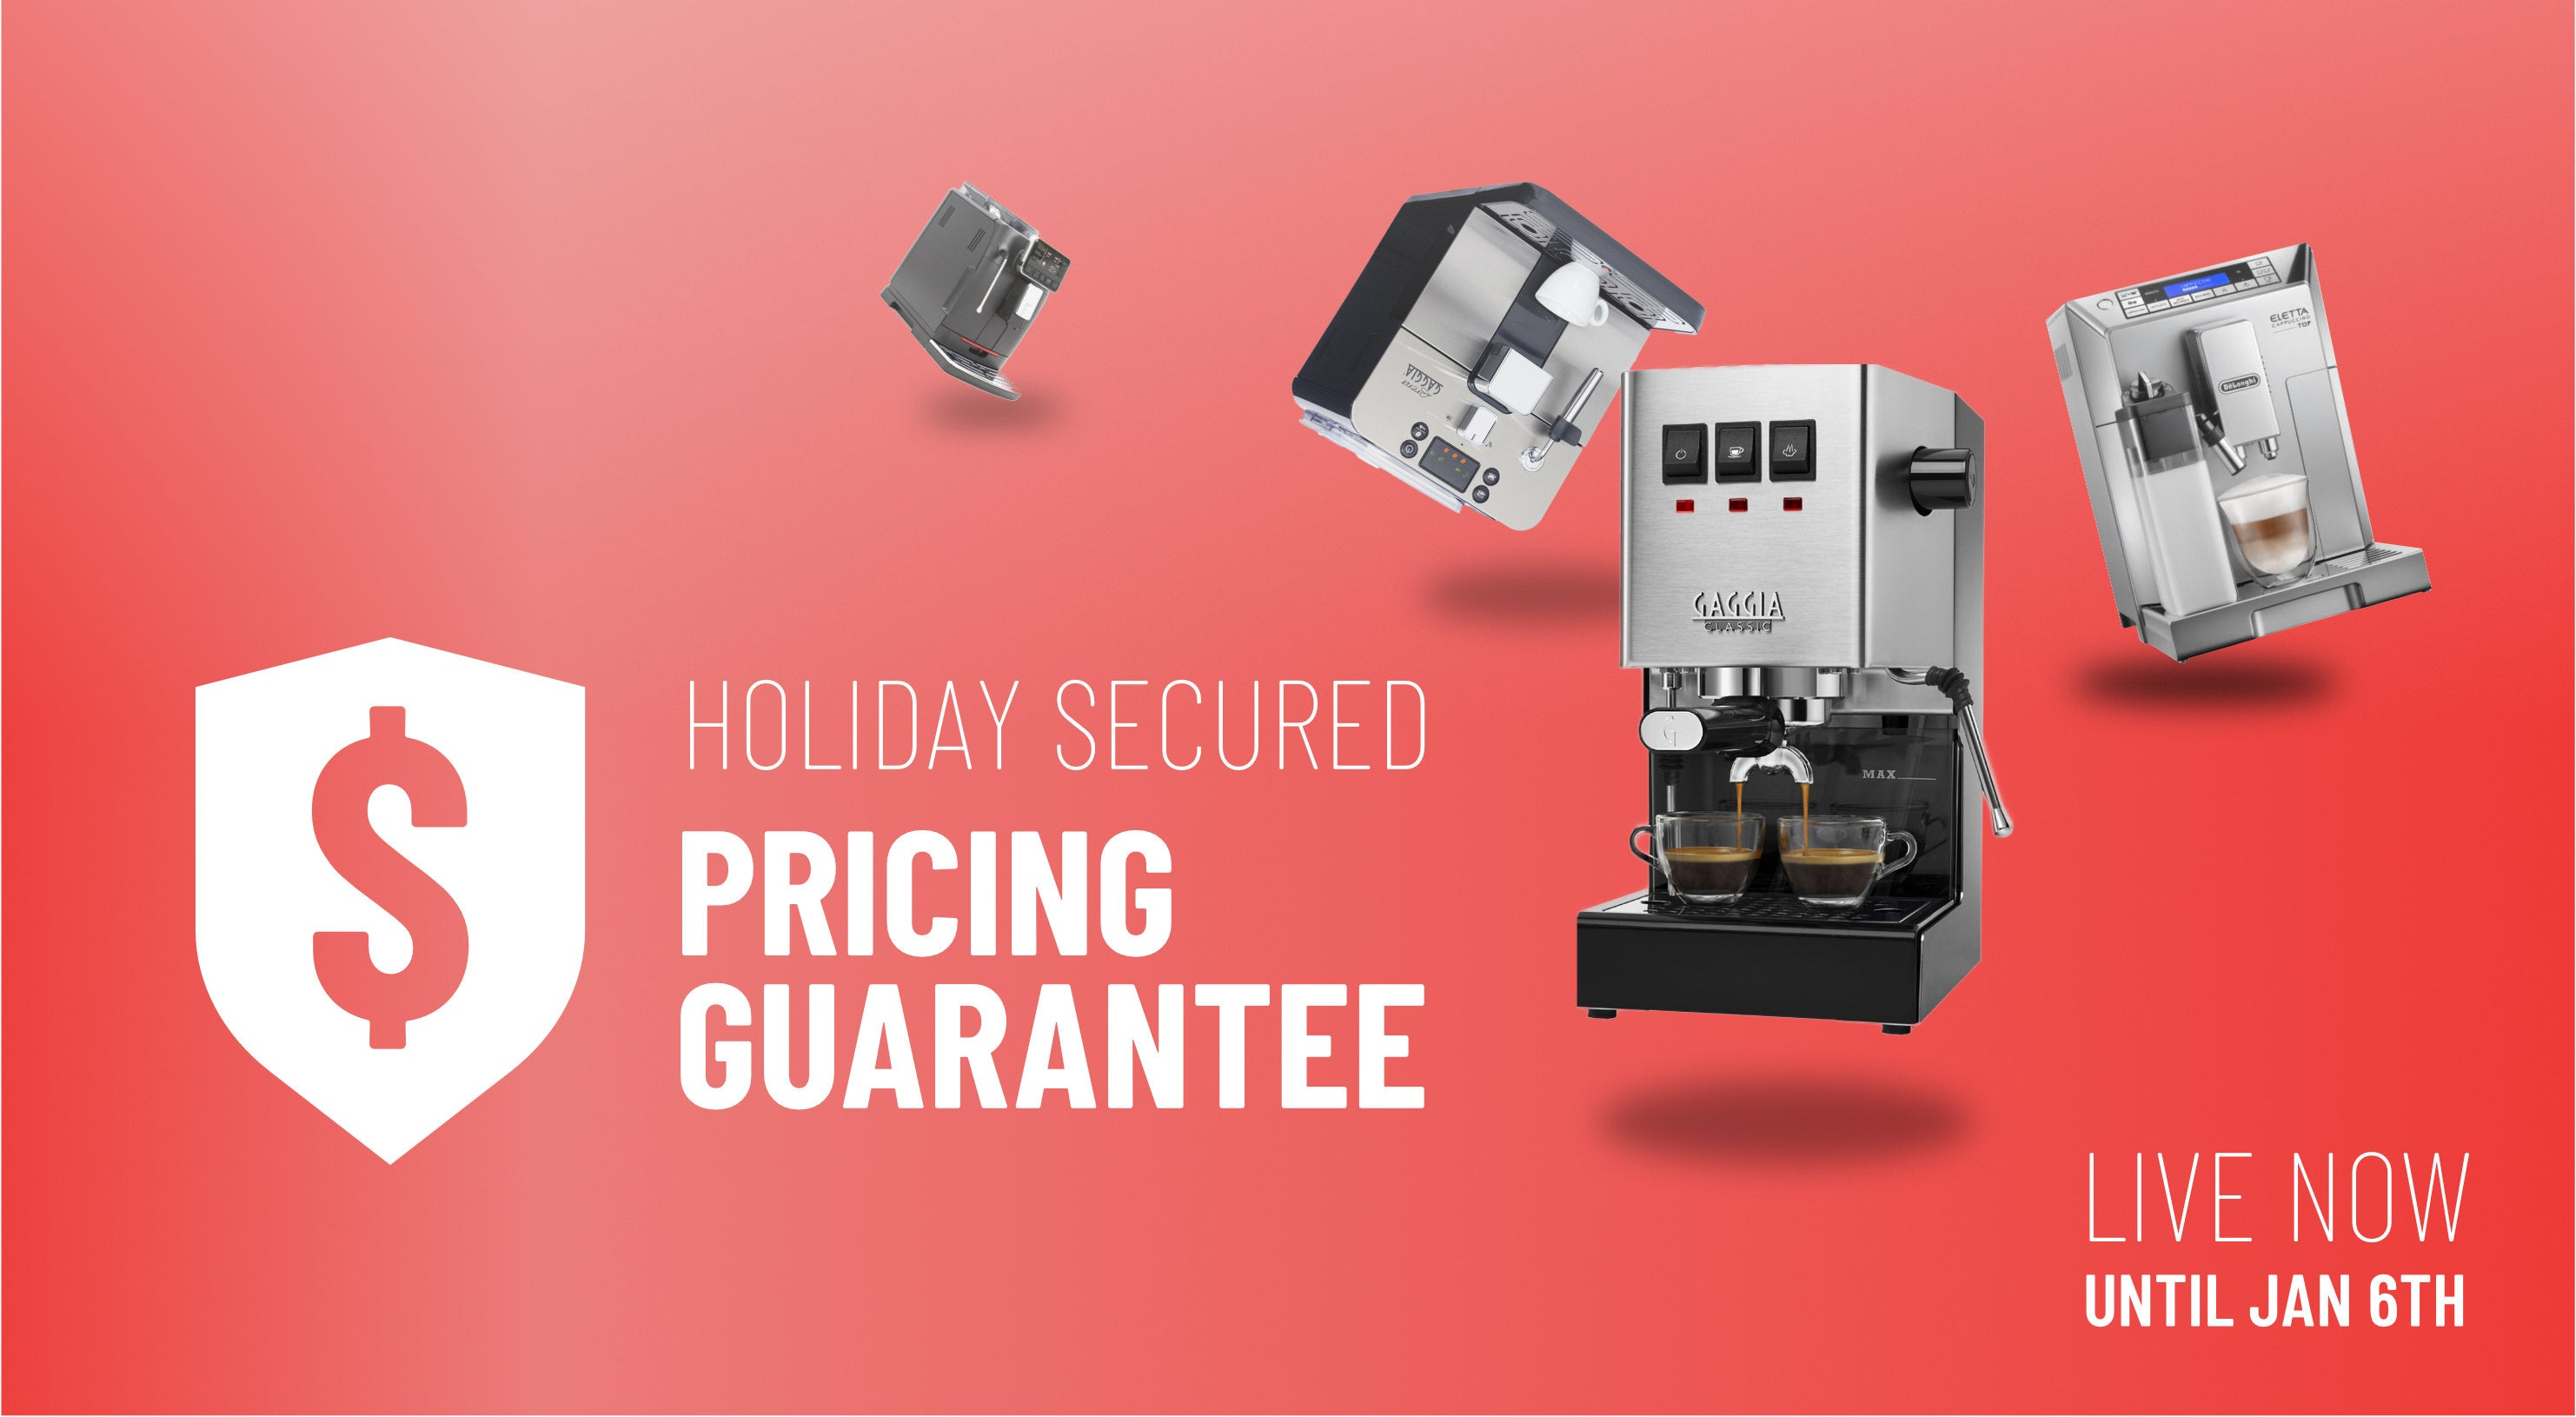 Holiday Secured Pricing Guarantee